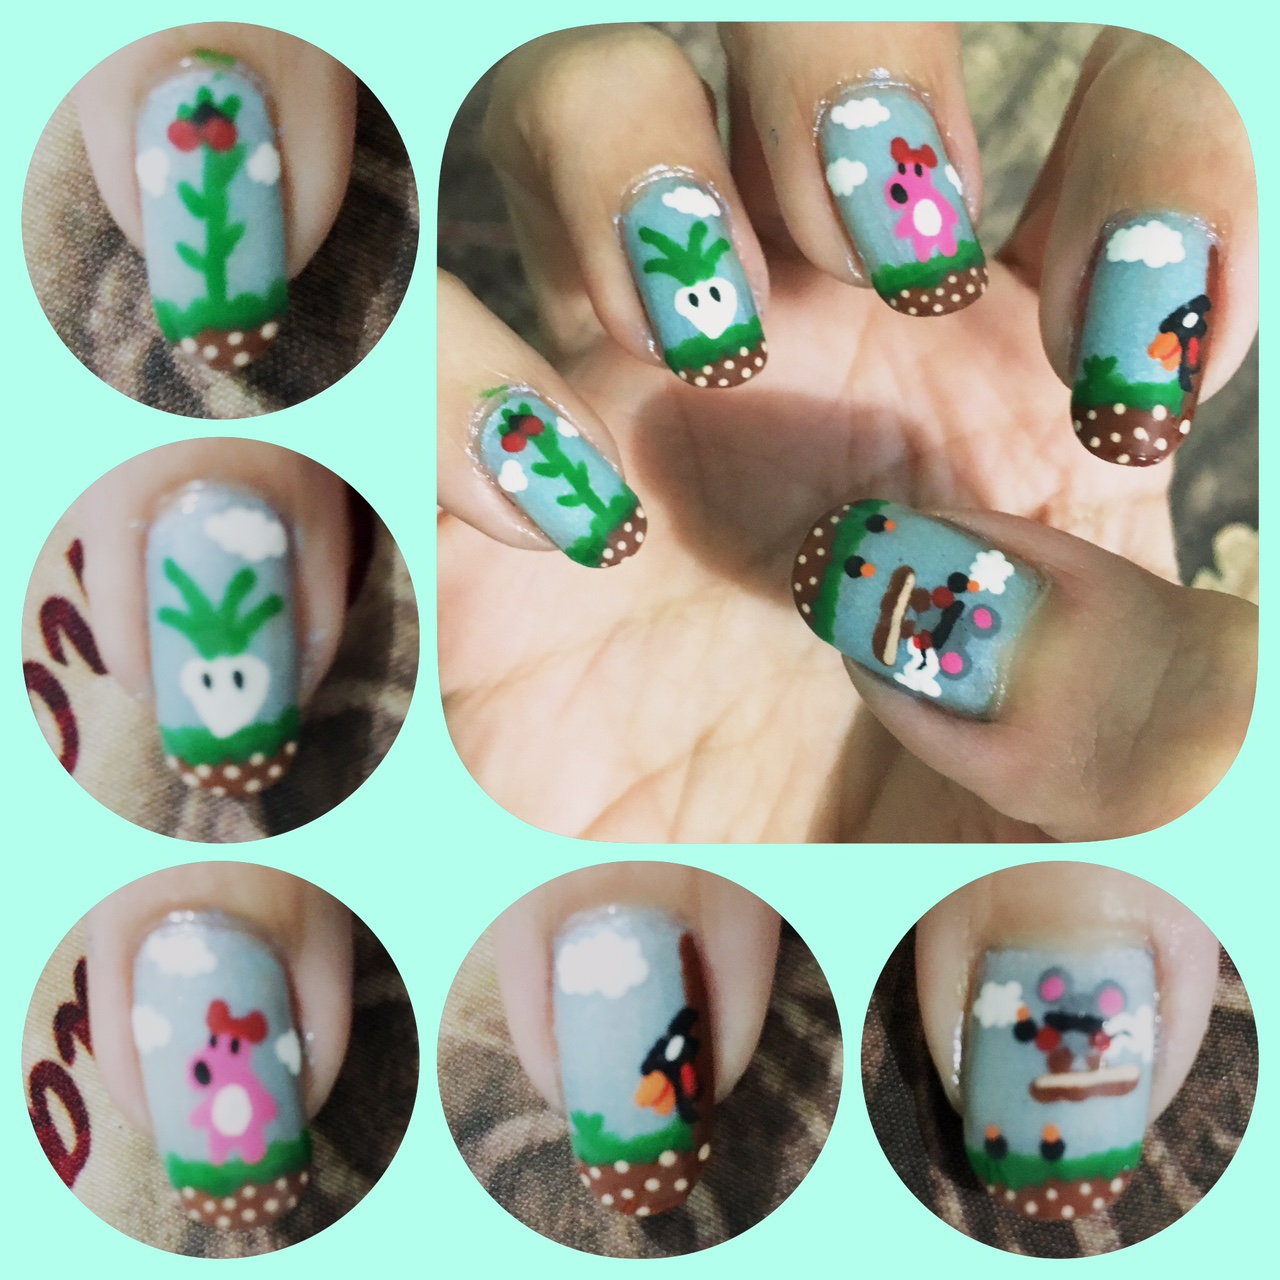 Mario 2 nail art right by AzureMikari